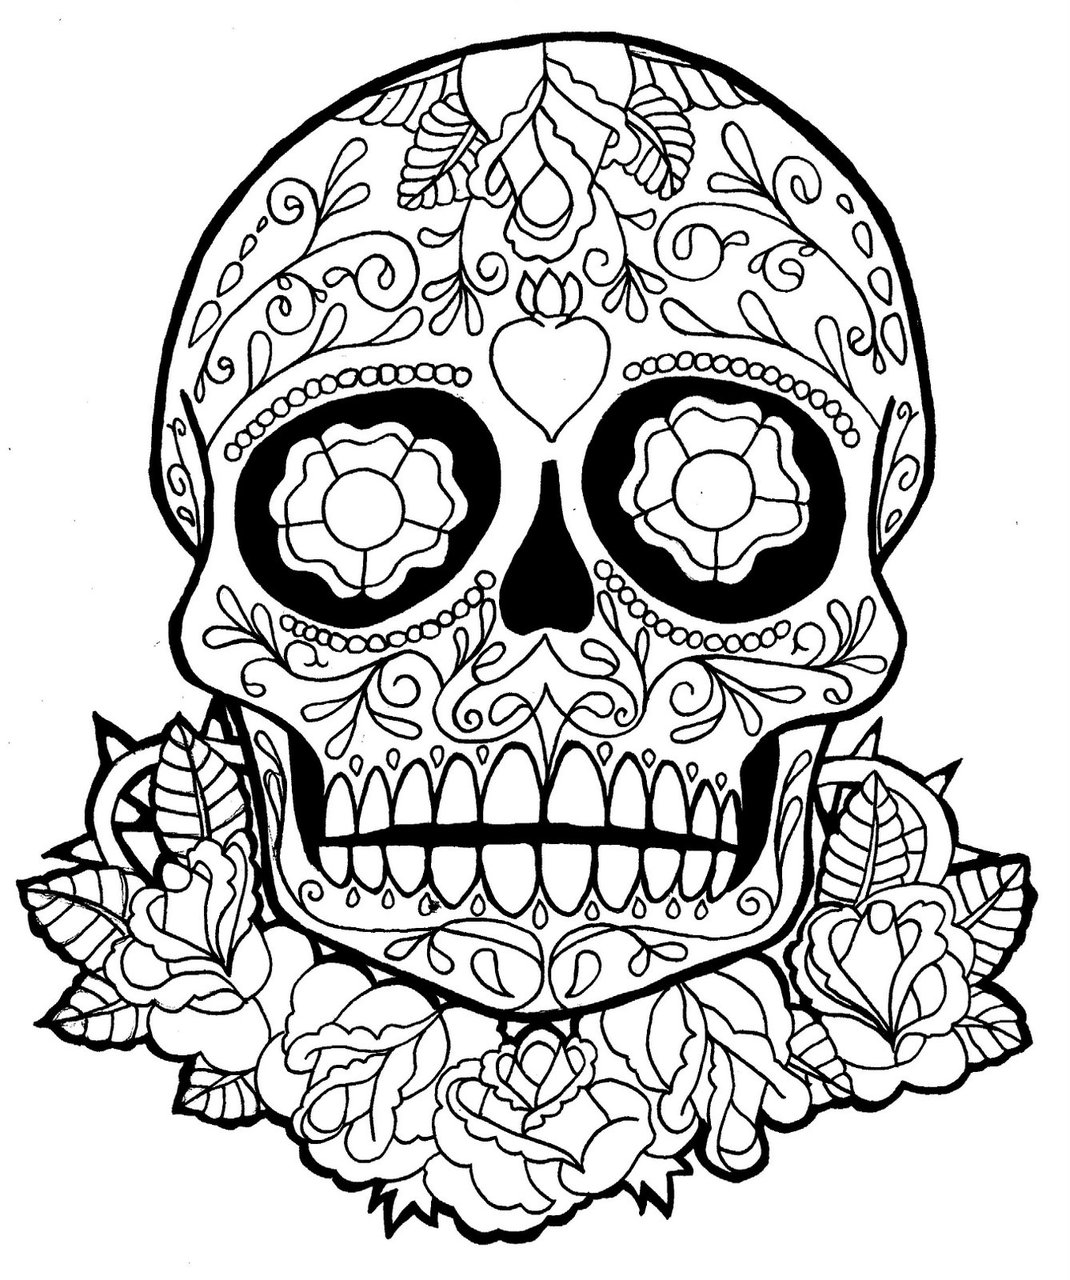 1070x1280 Skull Coloring Pages For Teen Sugar Skull Dia De Los Muertos